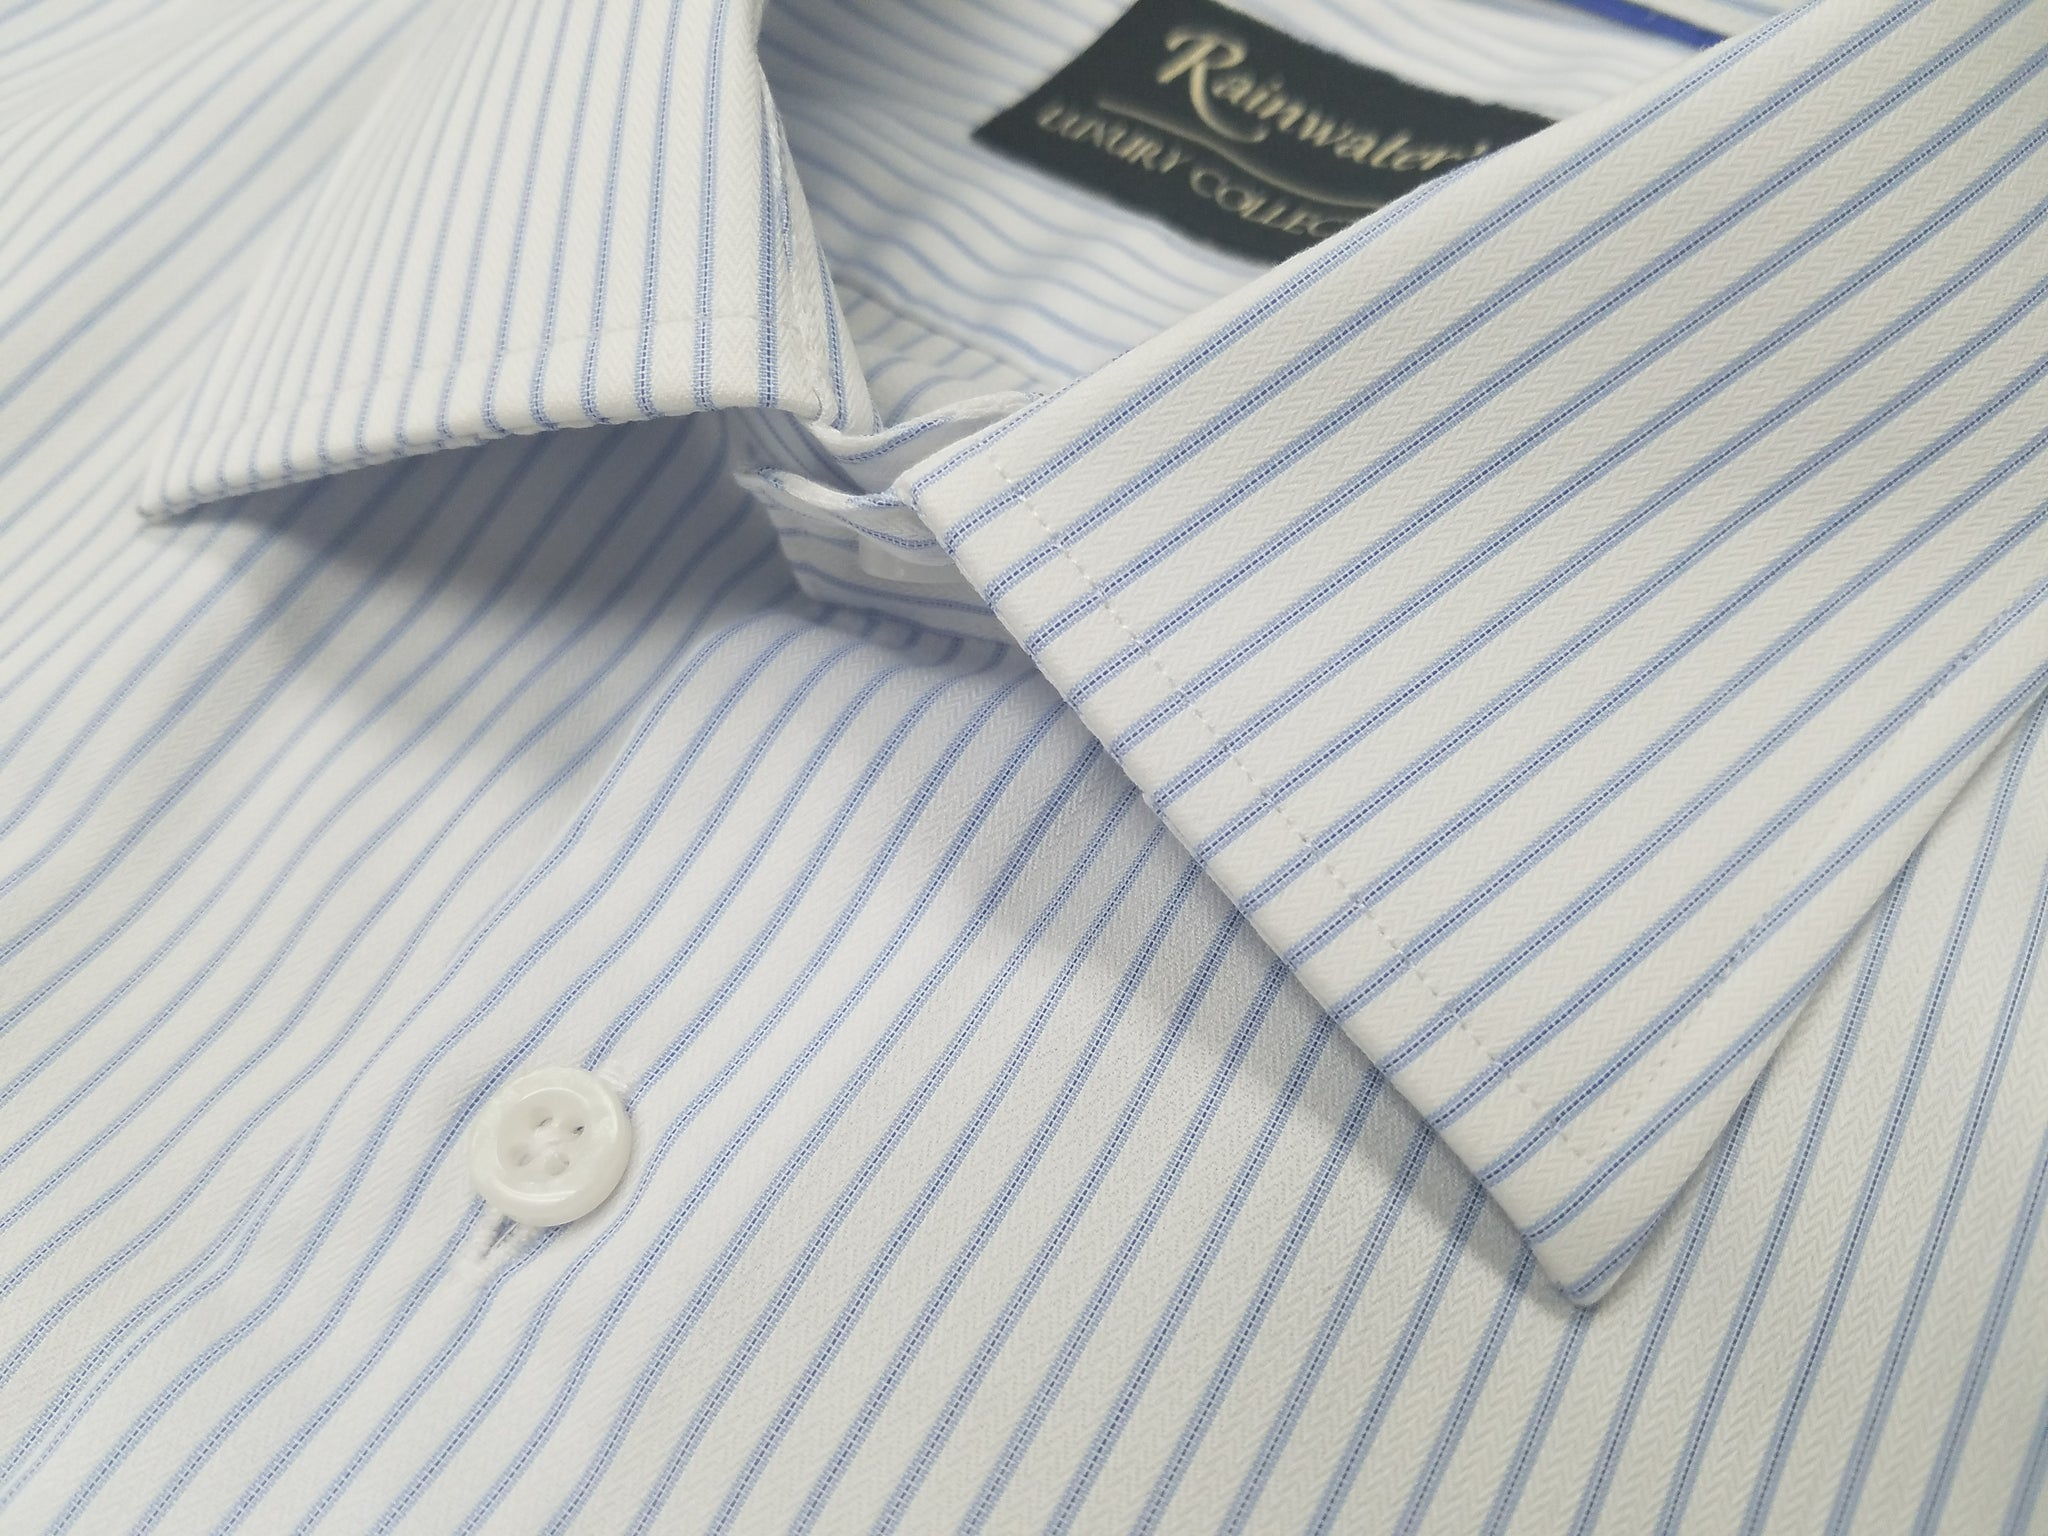 Rainwater's 100's 100% Cotton White Blue Striped Spread Collar Dress Shirt - Rainwater's Men's Clothing and Tuxedo Rental